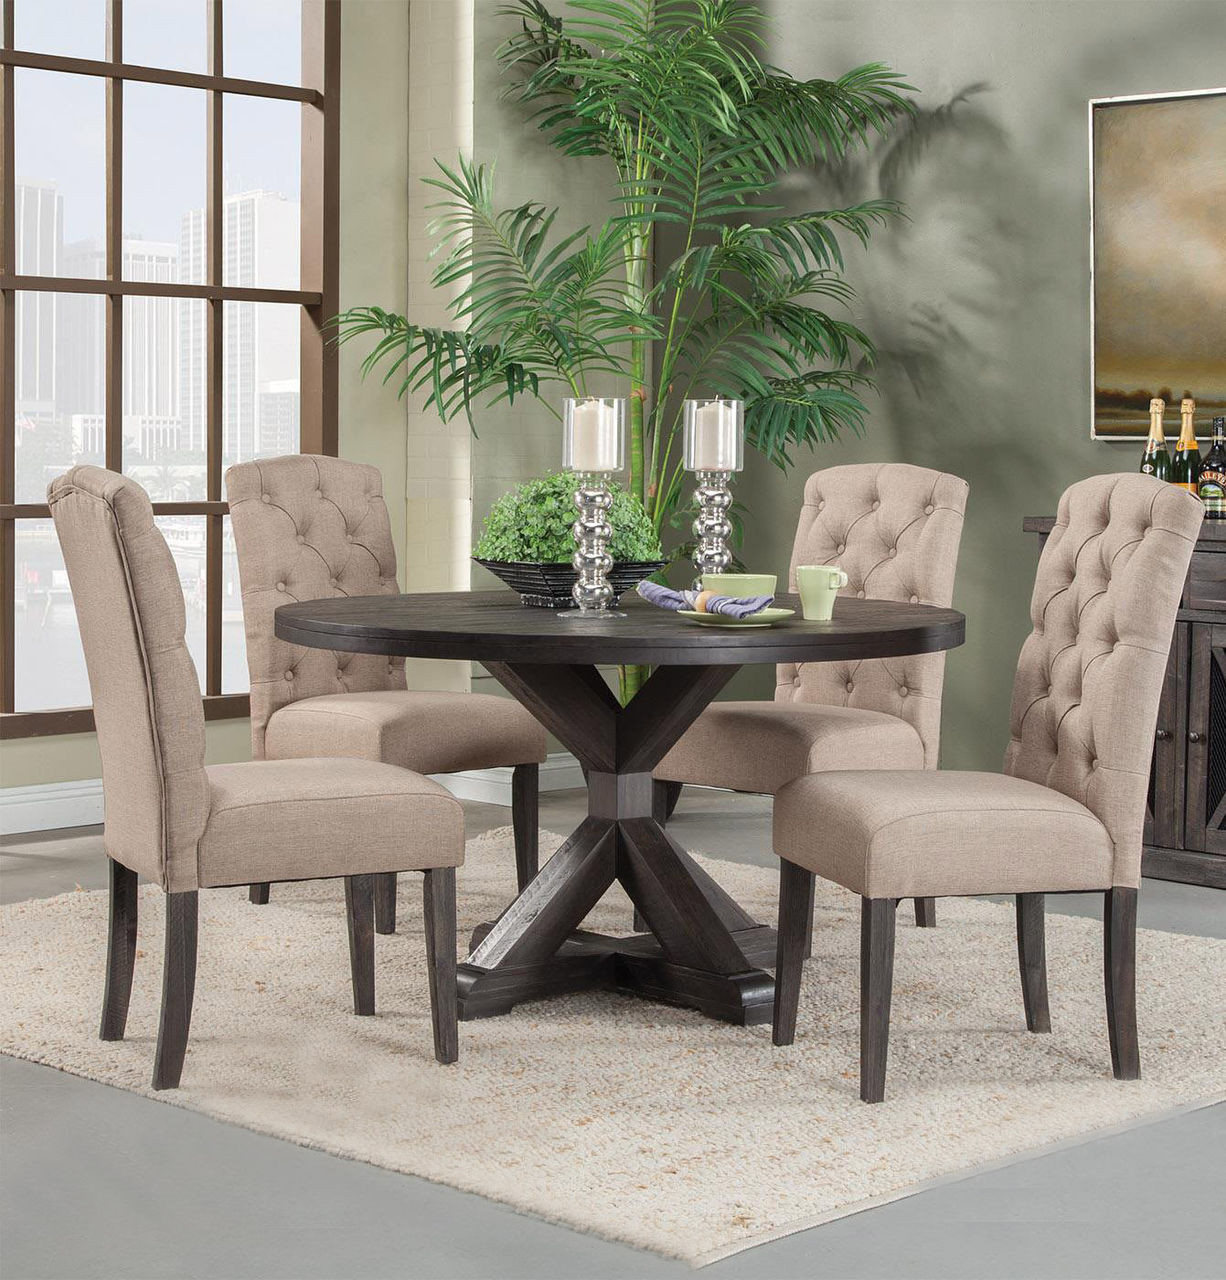 8 Room Chairs Dining Server And Table Mission